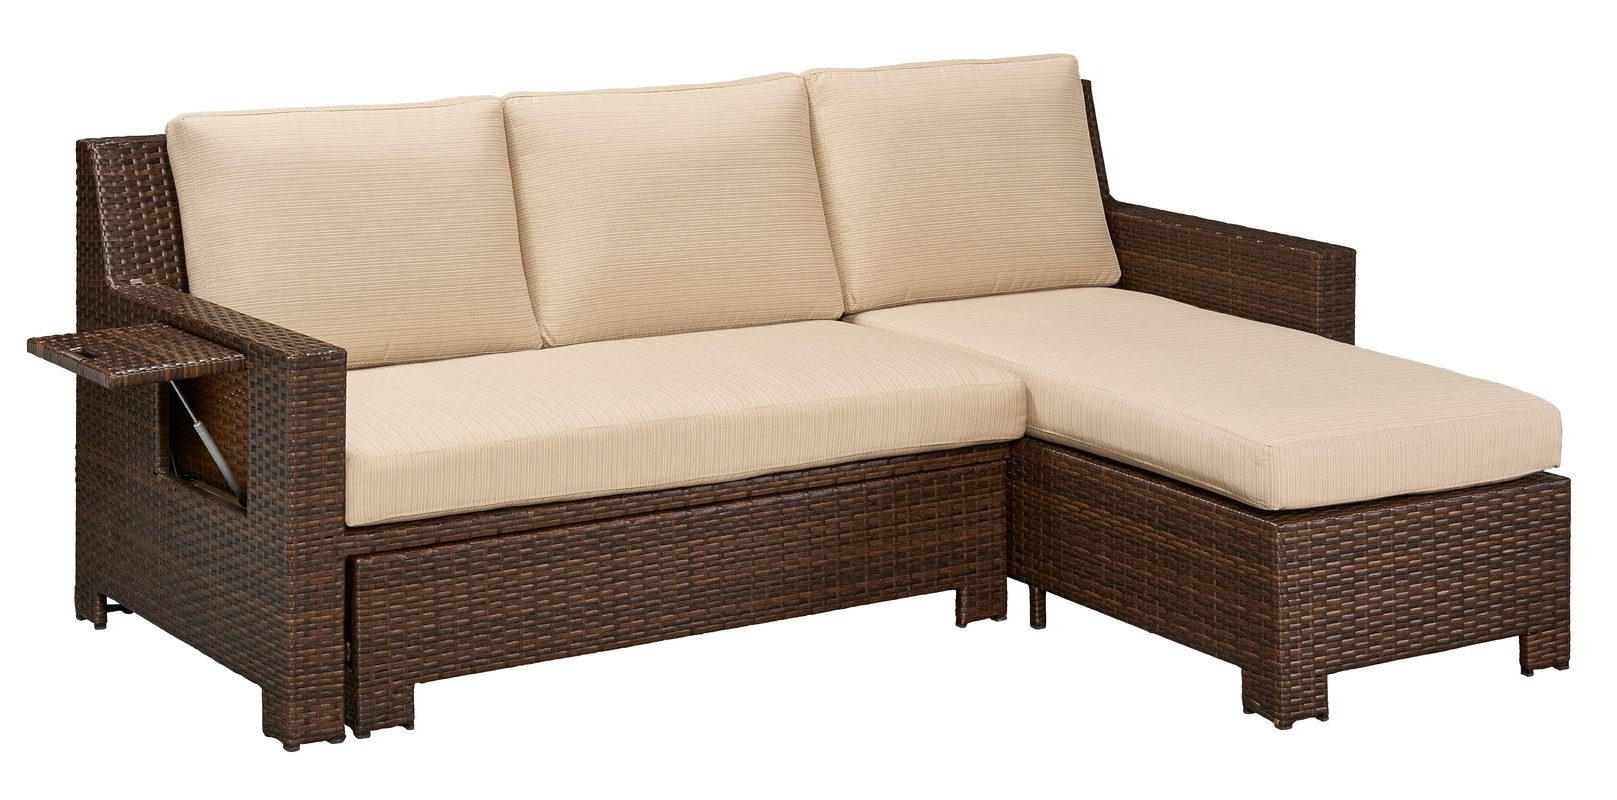 Trendy Darby Home Co Ferndale Deck Convertible Sectional Sofa With Throughout Convertible Sectional Sofas (View 9 of 15)